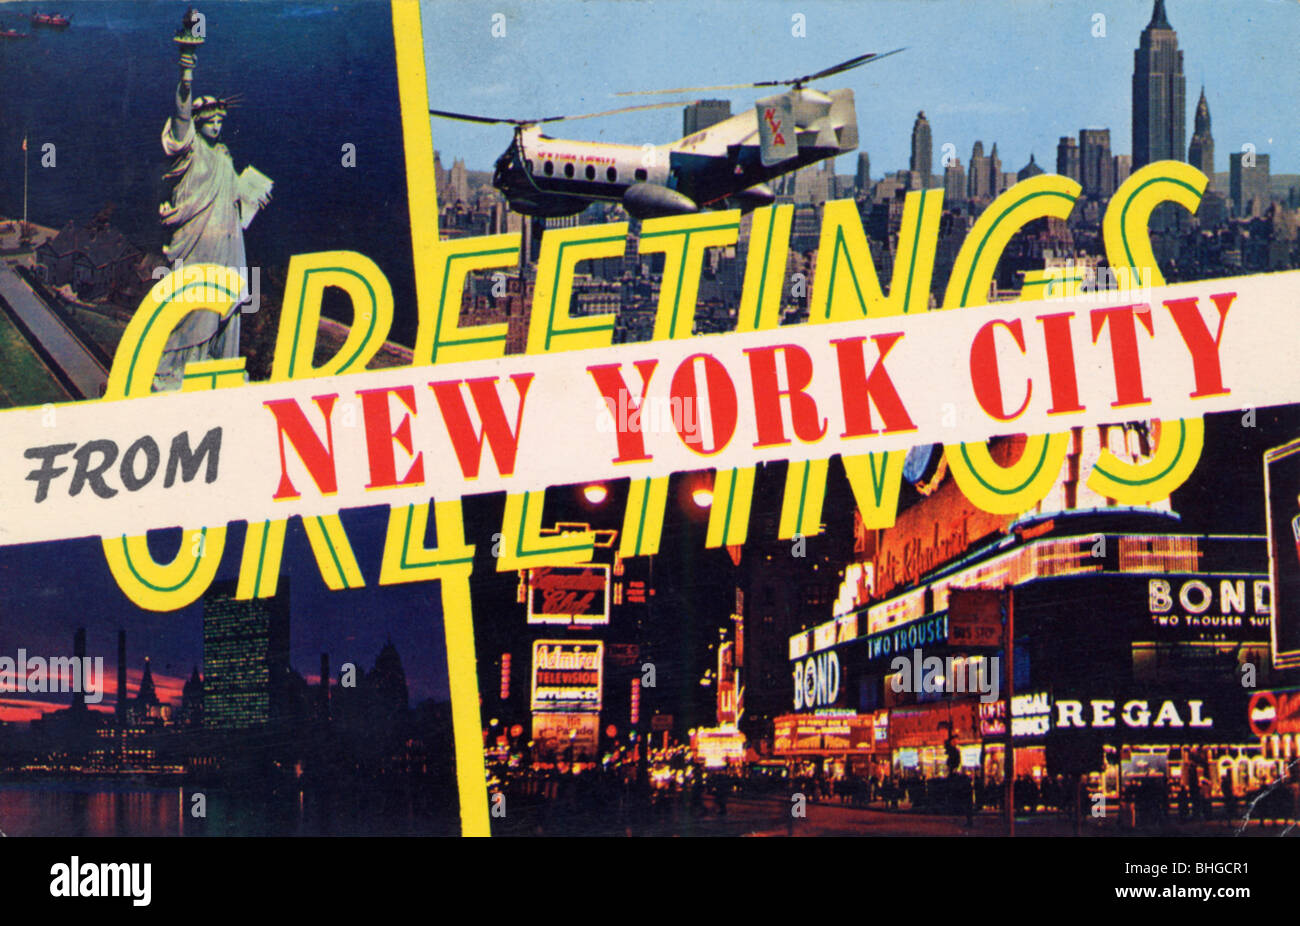 Greetings from new york city postcard 1961 stock photo 28020805 greetings from new york city postcard 1961 m4hsunfo